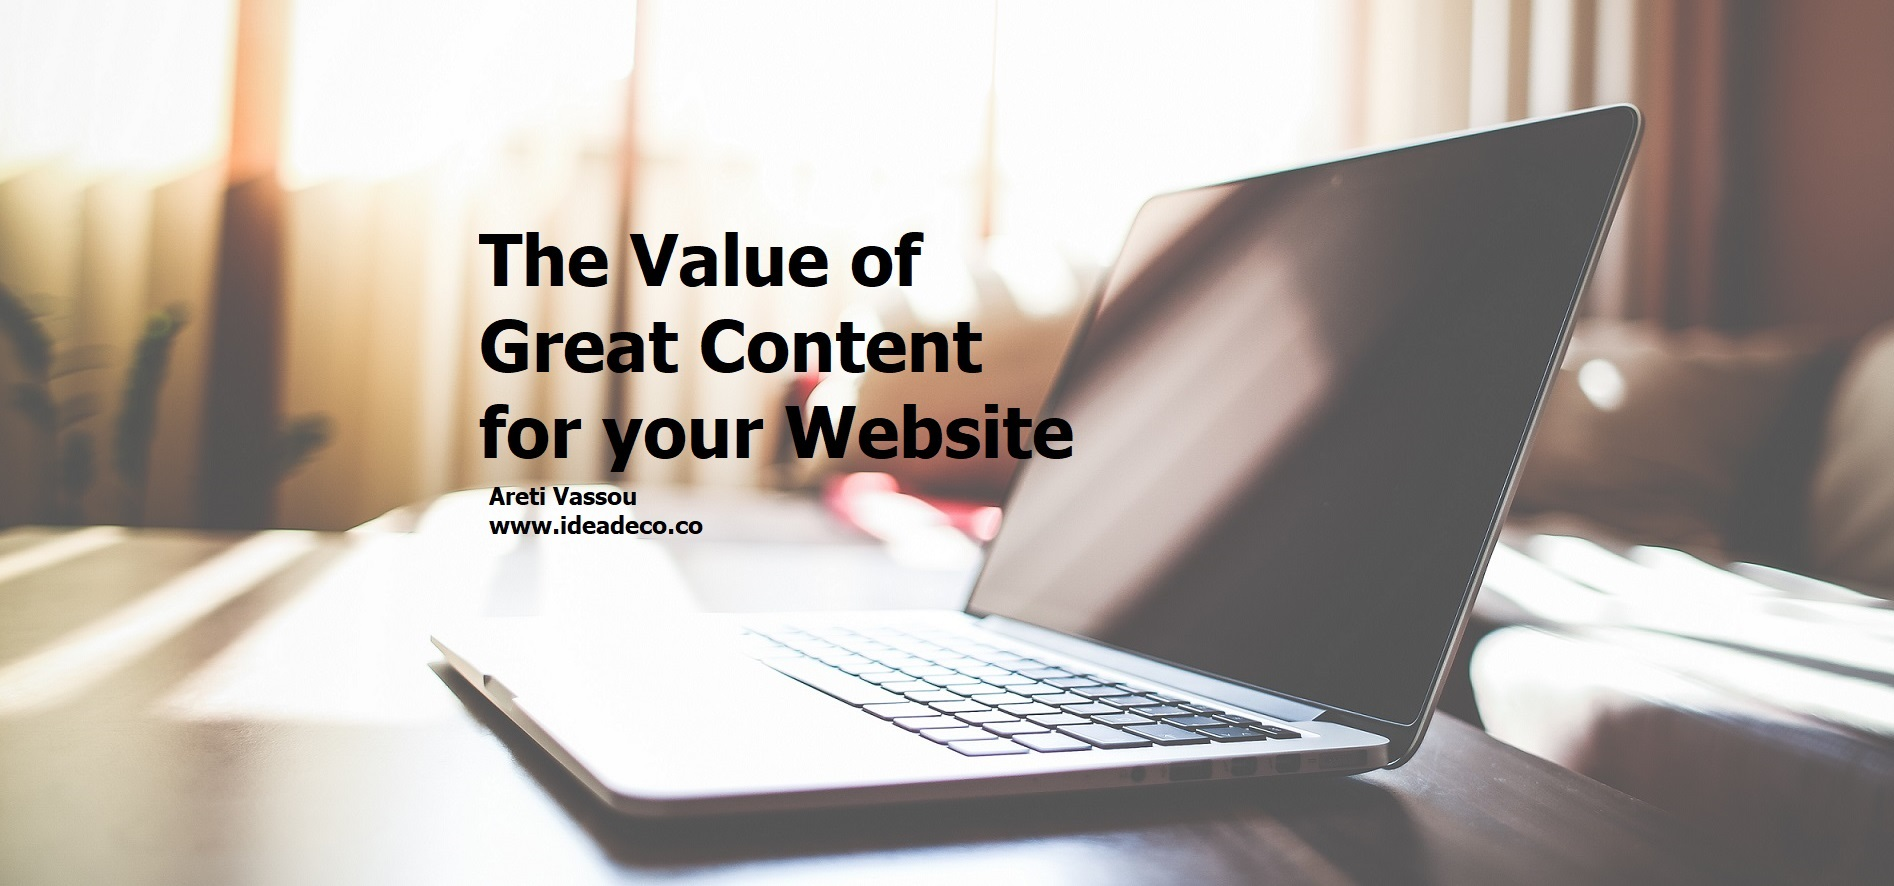 The Value of Great Content for your Website by Areti Vassou Ideadeco